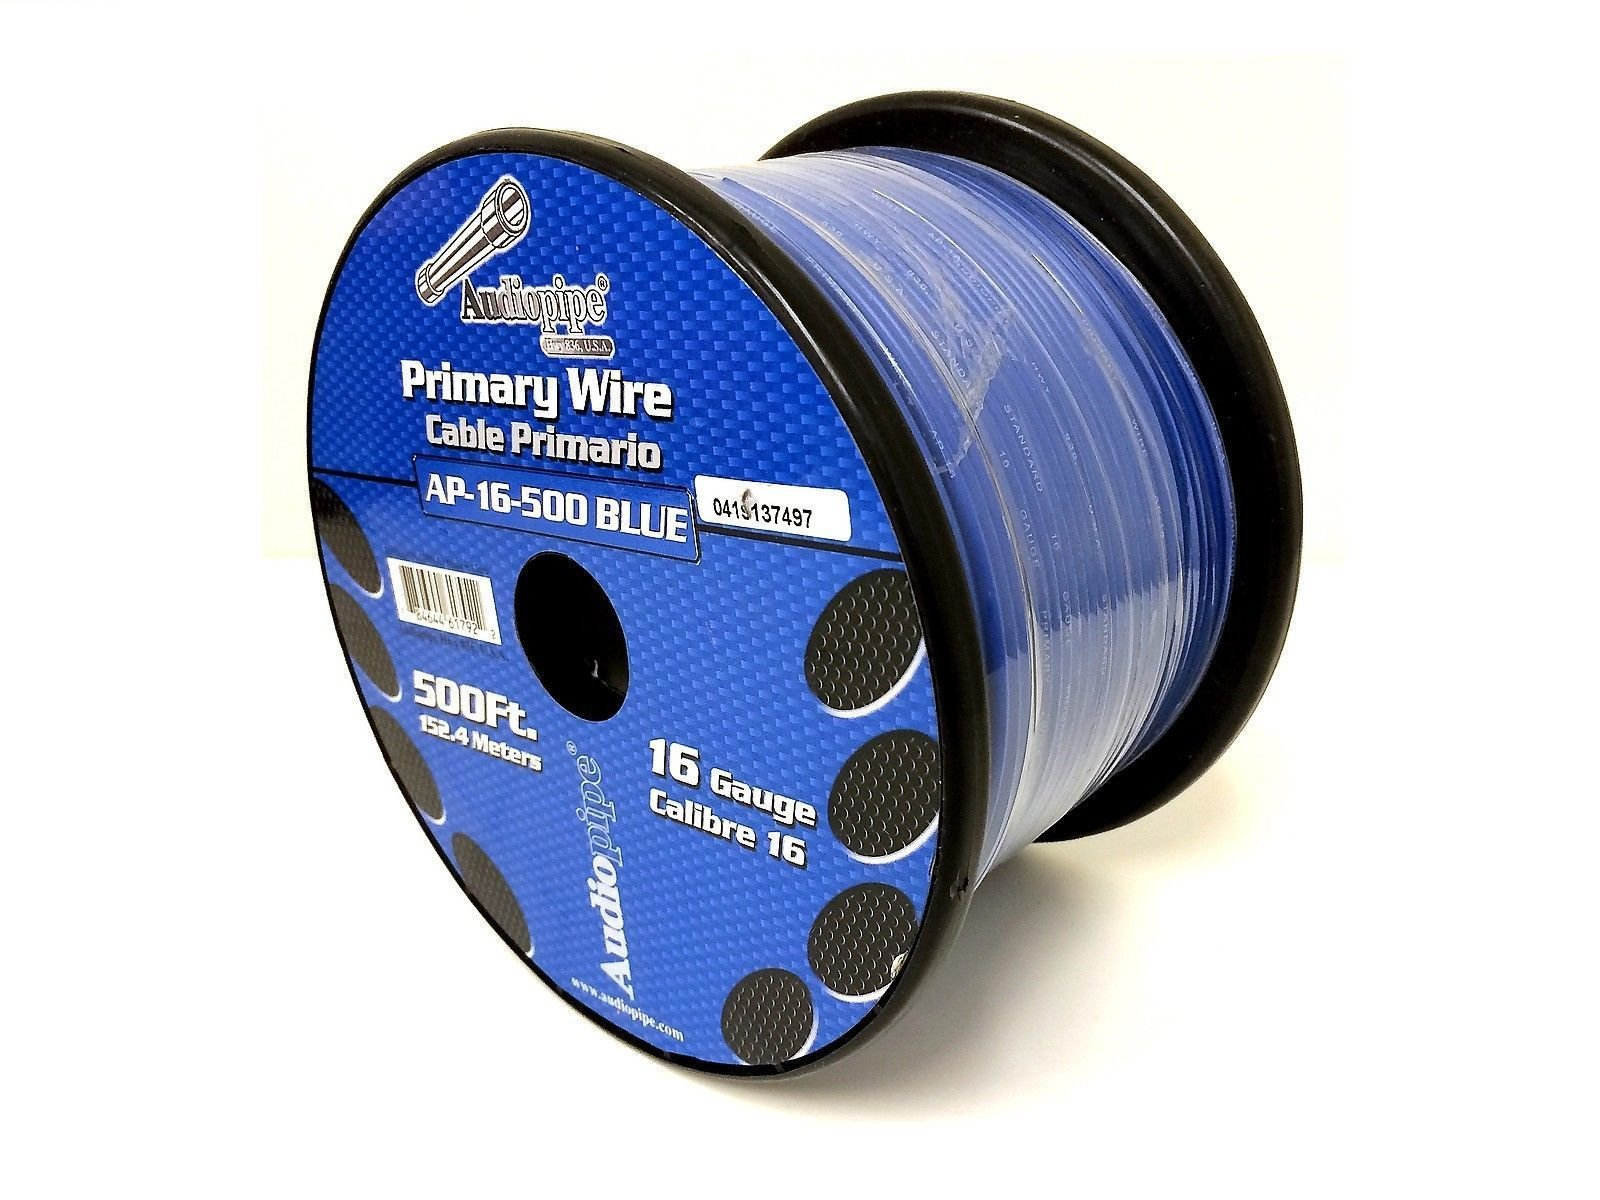 3 Rolls of 16 Gauge - 500' each Audiopipe Car Audio Home Primary Remote Wire by Audiopipe (Image #3)